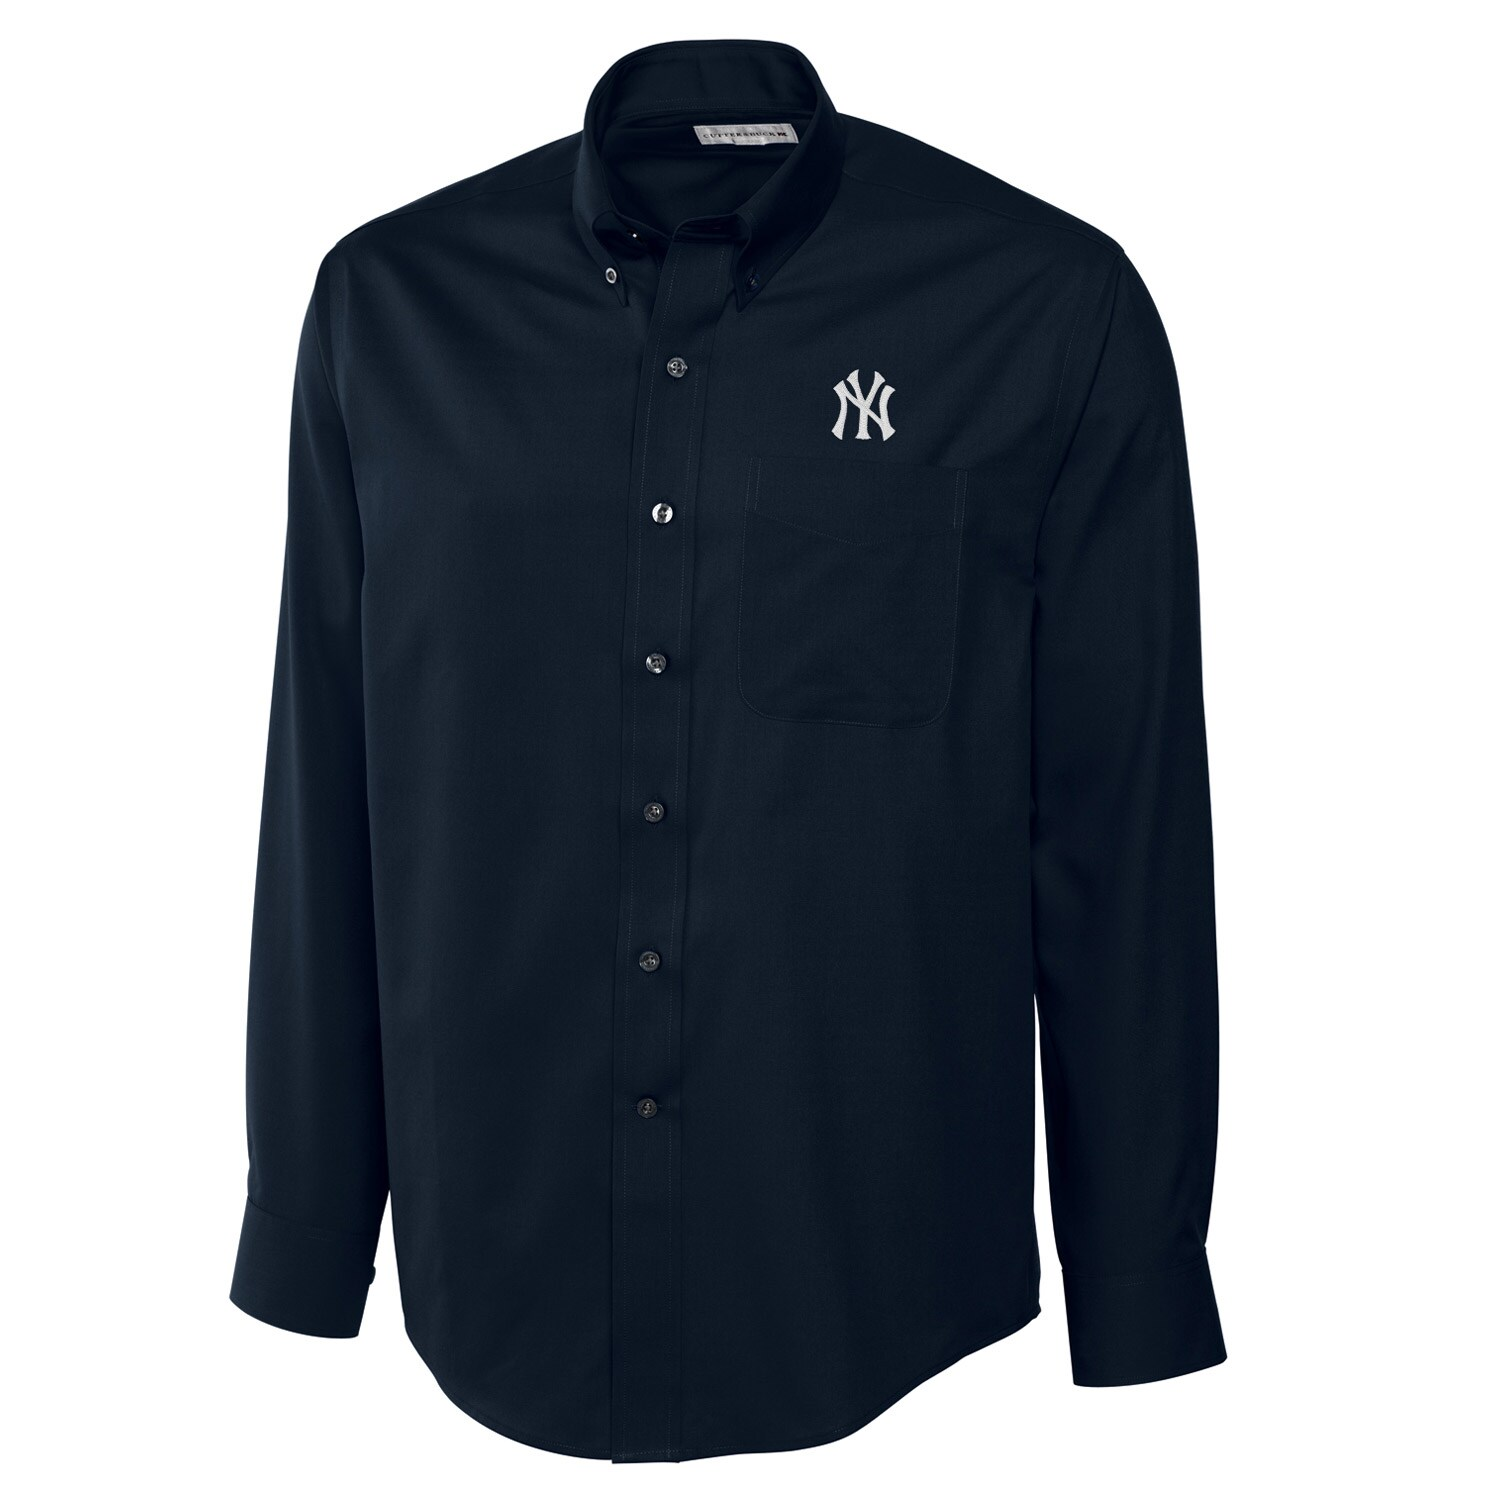 New York Yankees Cutter & Buck Big & Tall Epic Easy Care Fine Twill Long Sleeve Shirt - Navy